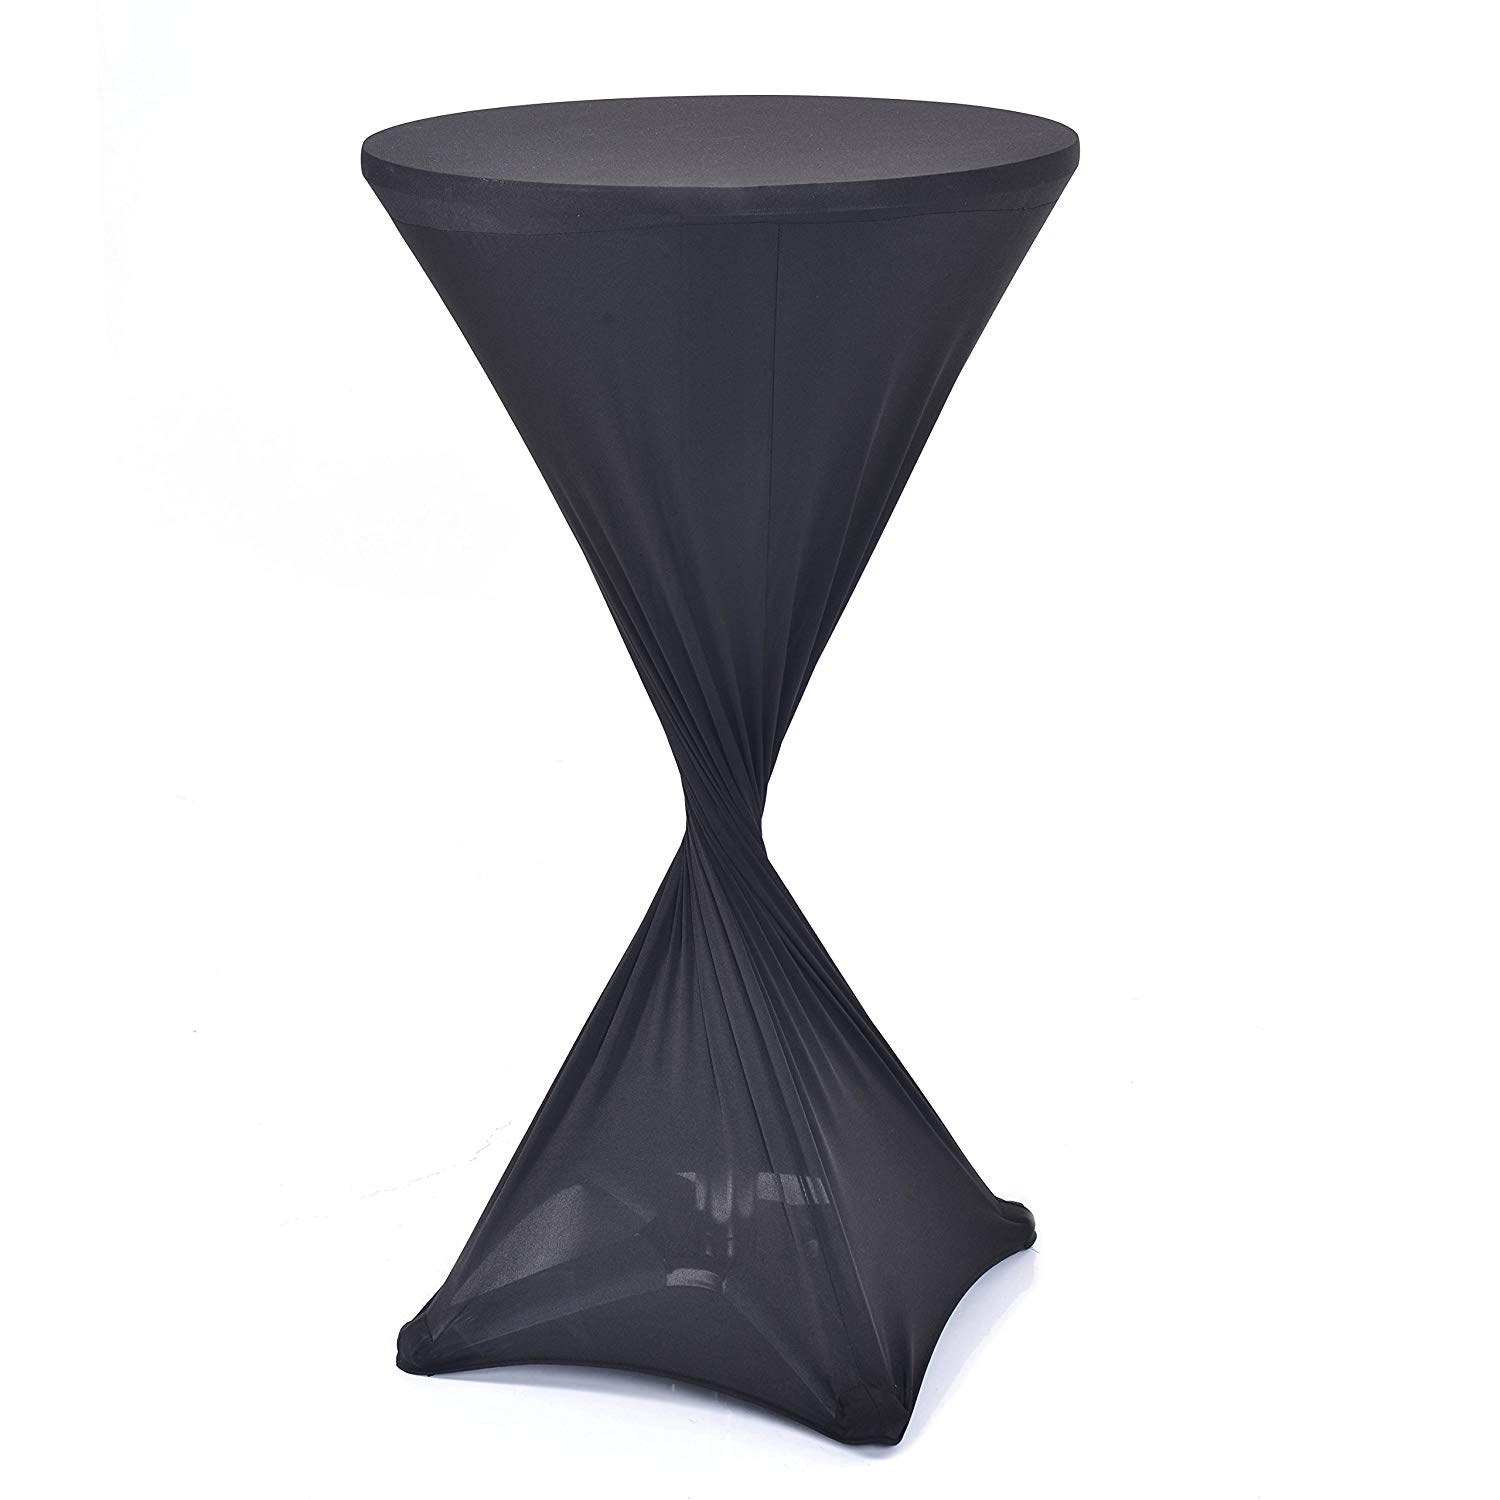 "Votown Home Cocktail Fitted Spandex Table Cover for Folding Bar Height Tables 24"" Round x 42"" Tall (Black)"